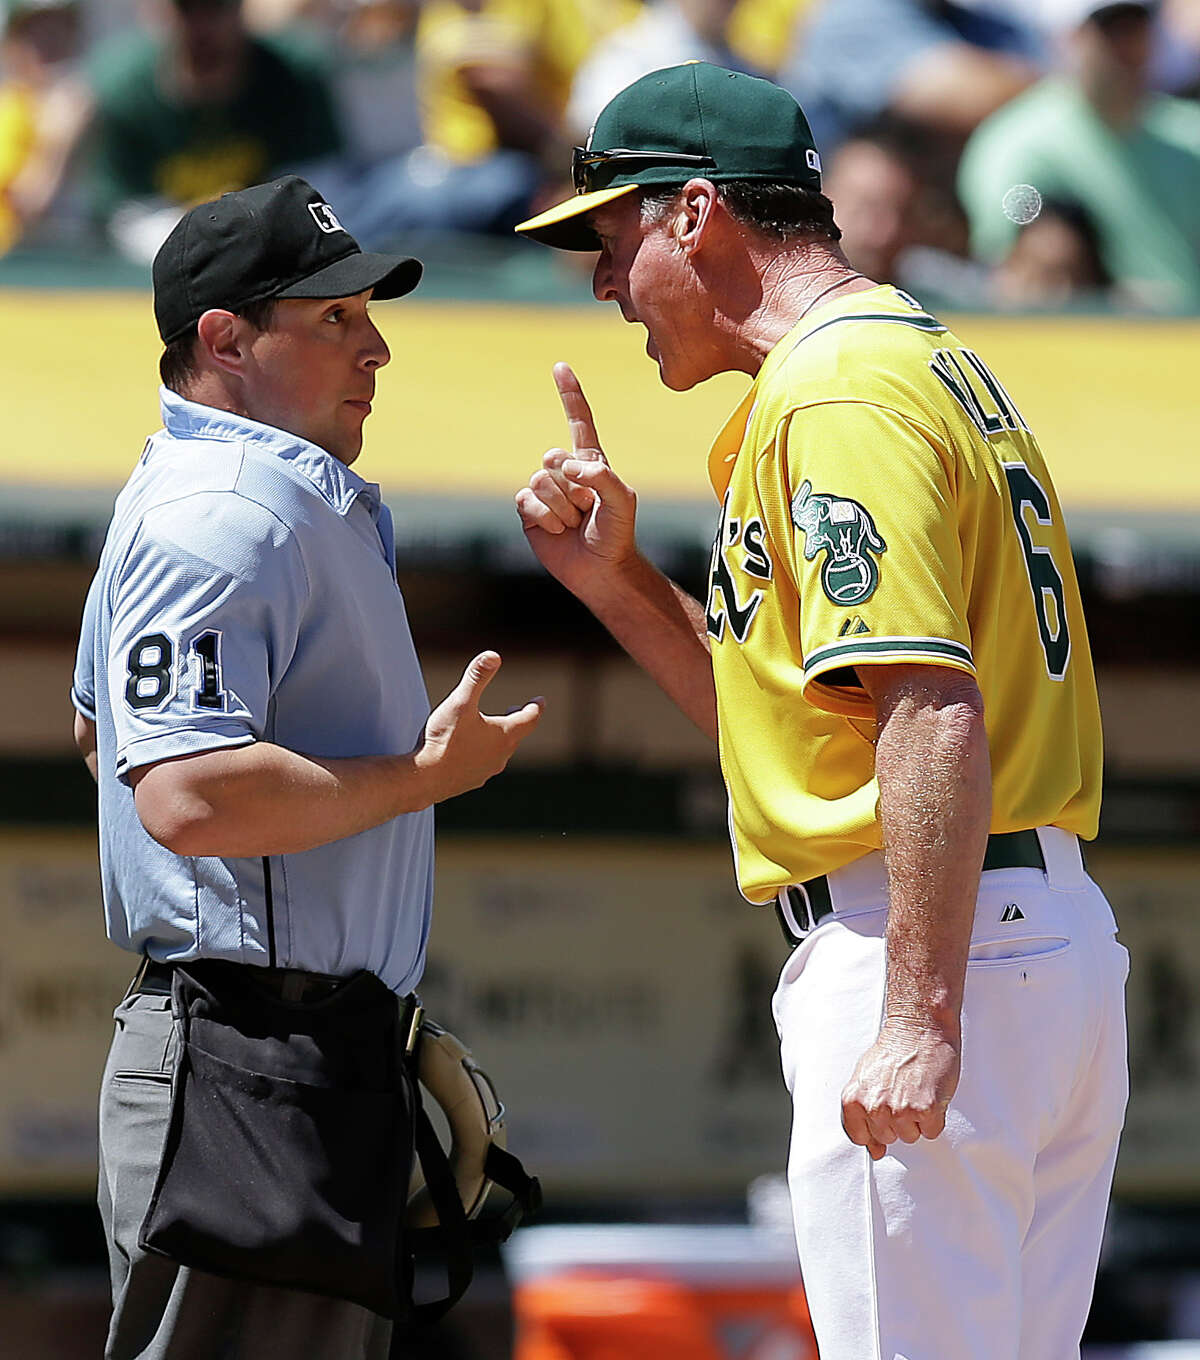 A frustrating weekend for the A's, in which they were swept by the Astros, came to an early end for Oakland manager Bob Melvin, who was ejected by home-plate umpire Quinn Wolcott in the fourth inning for disputing a pitch called a ball.